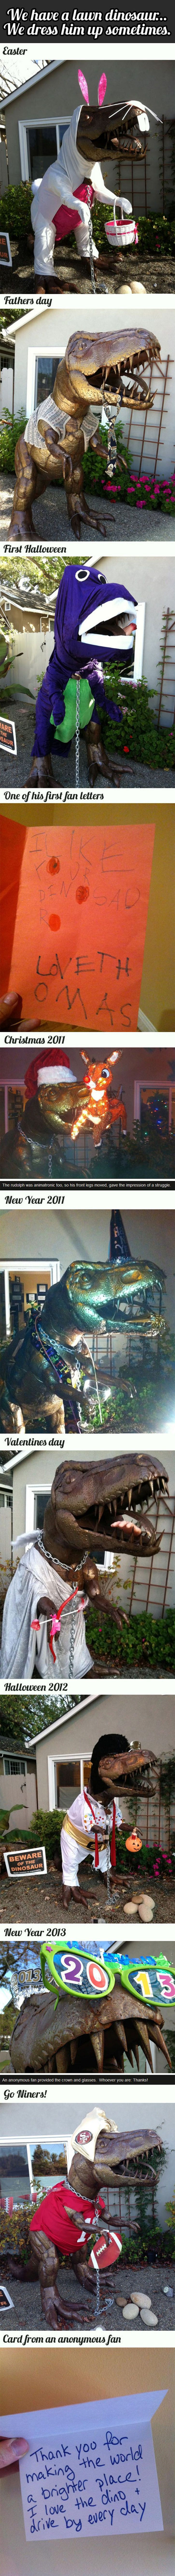 This is made me smile... I want a metal dinosaur statue.... can we get one for work and dress it up? please?